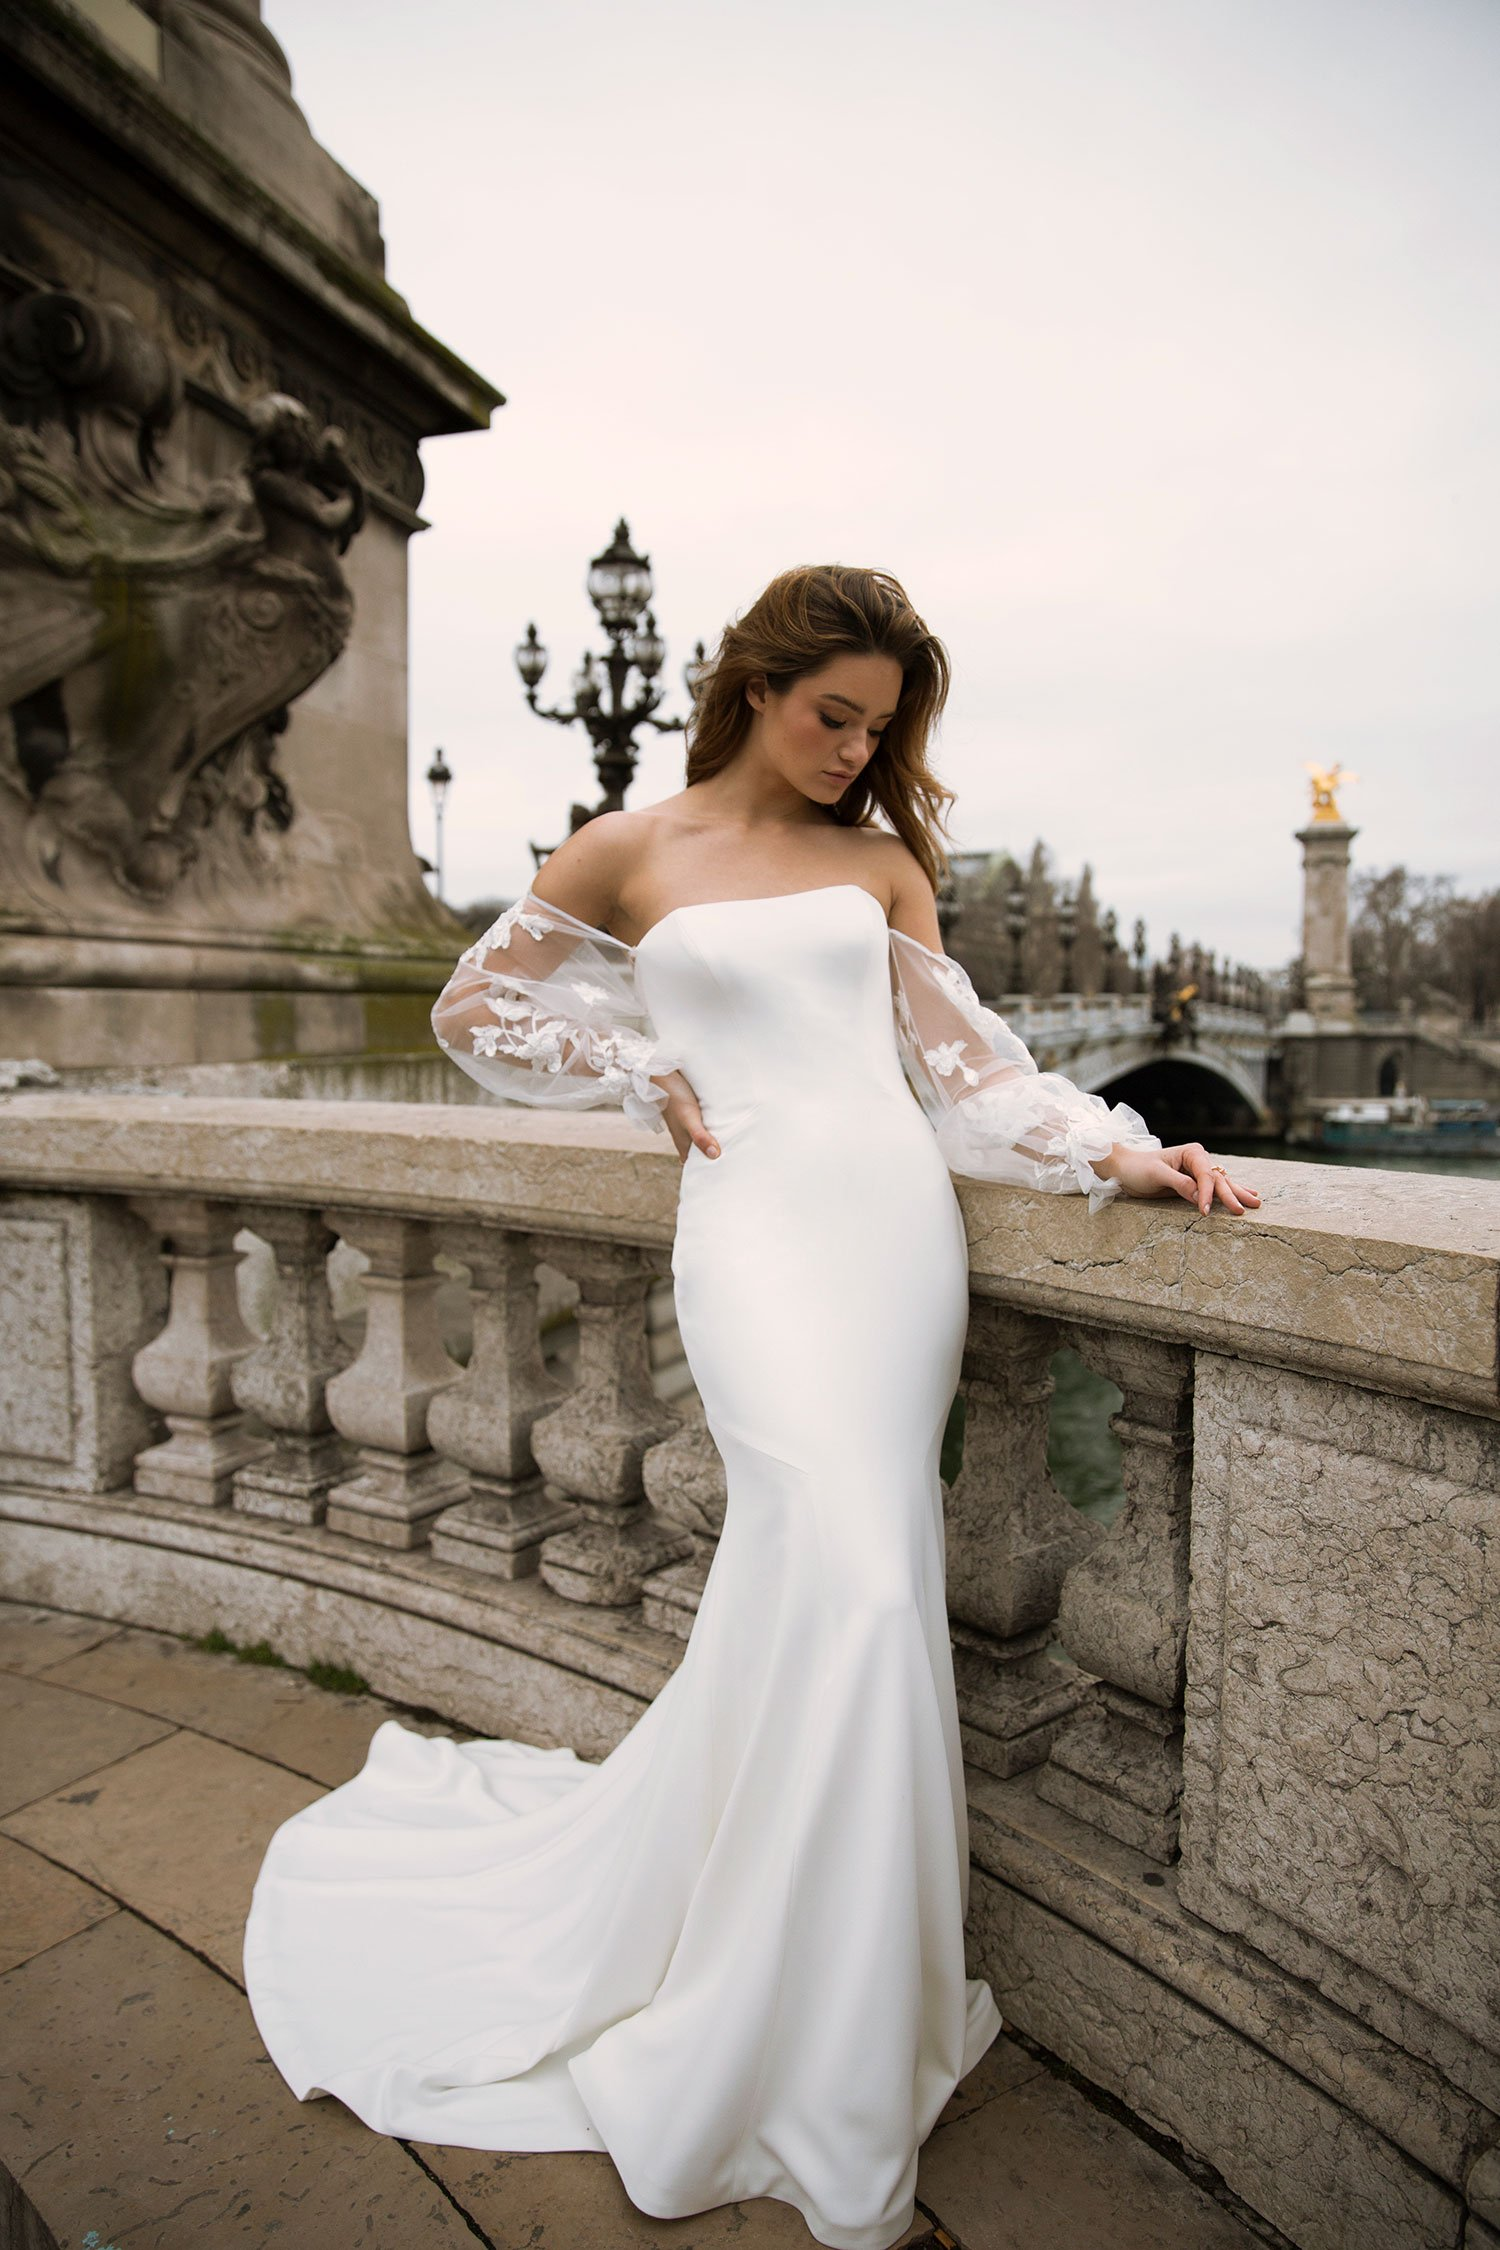 FINLEY-ML0153-STRAIGHT-NECKLINE-CREPE-GOWN-ZIP-AND-BUTTON-UP-BACK-WEDDING-DRESS-DETACHABLE-OFF-SHOULDER-TULLE-AND-LACE-BALLOON-SLEEVES-MADI-LANE-BRIDAL4